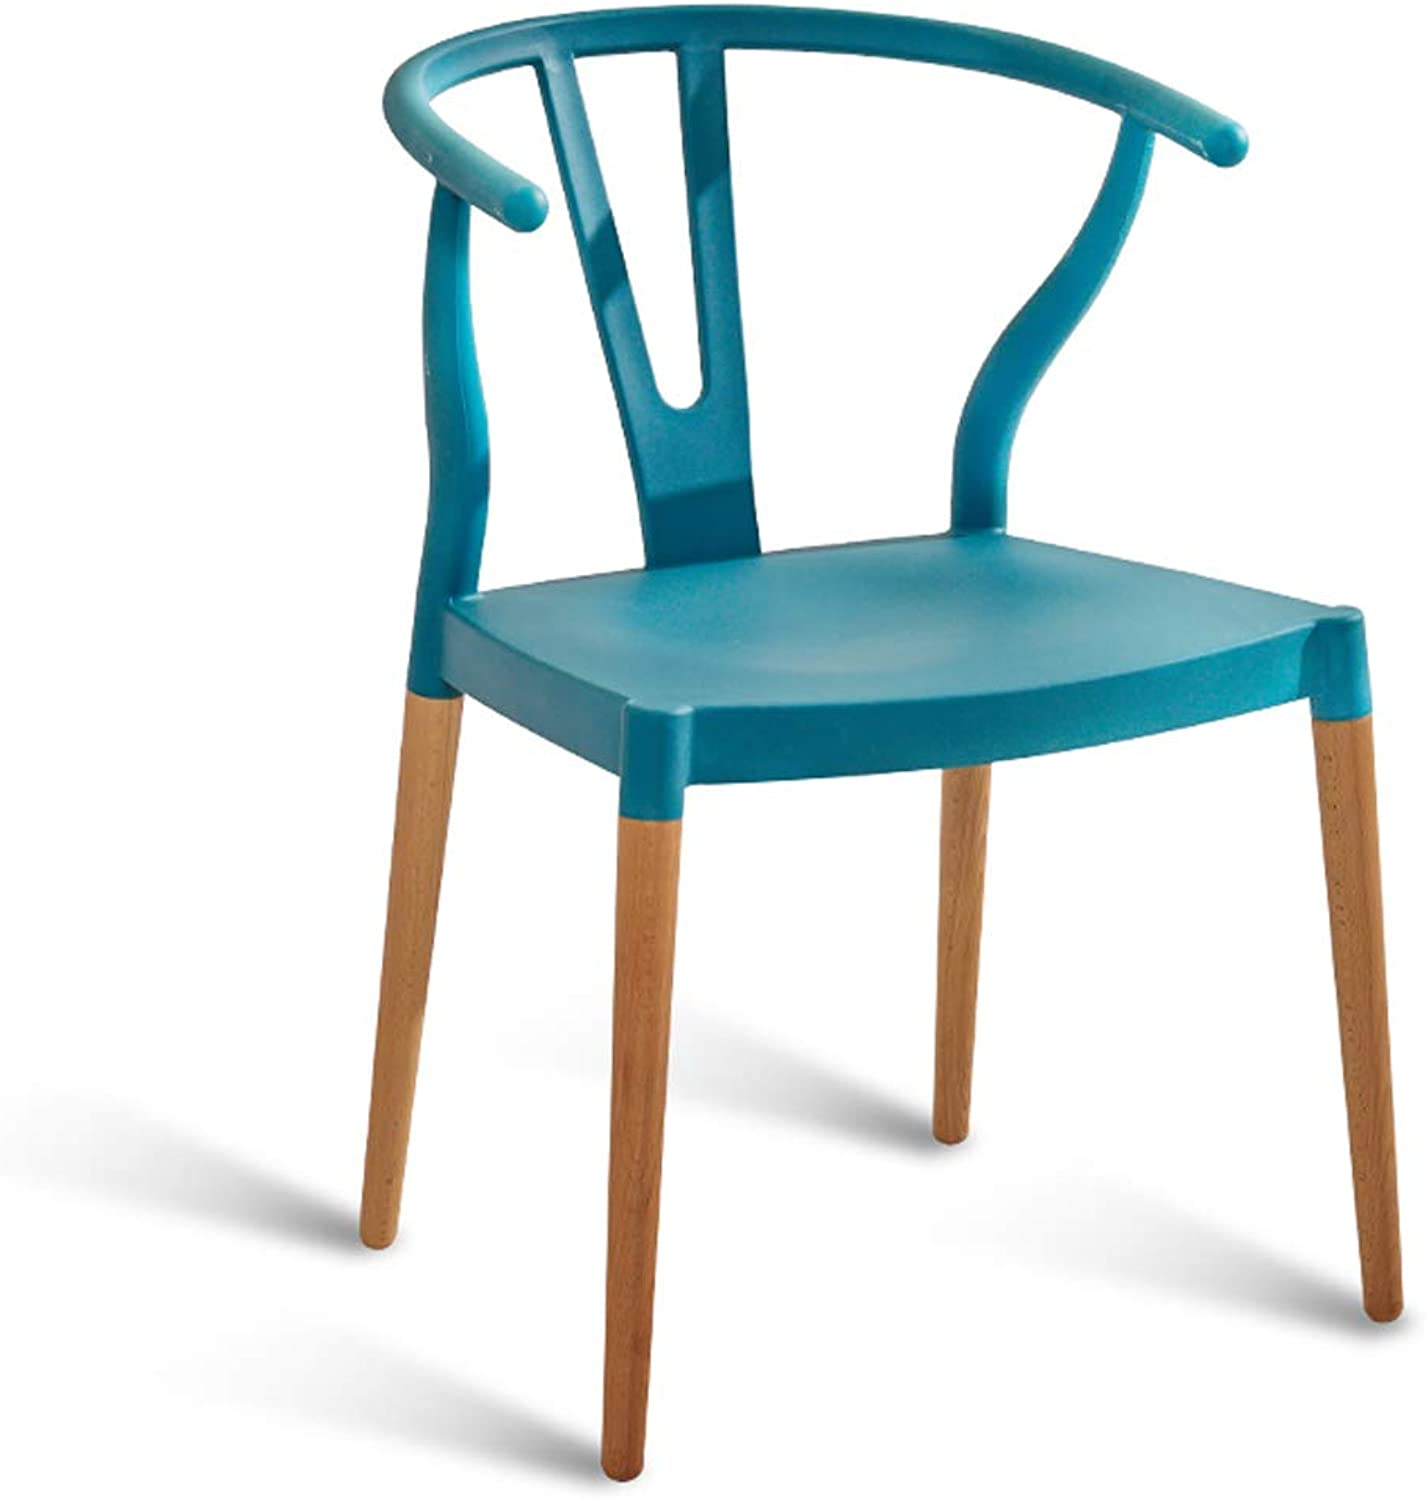 LRW Modern Minimalist Chairs, Home Study Chairs, Dining Chairs, Leisure Backrest Chairs, bluee